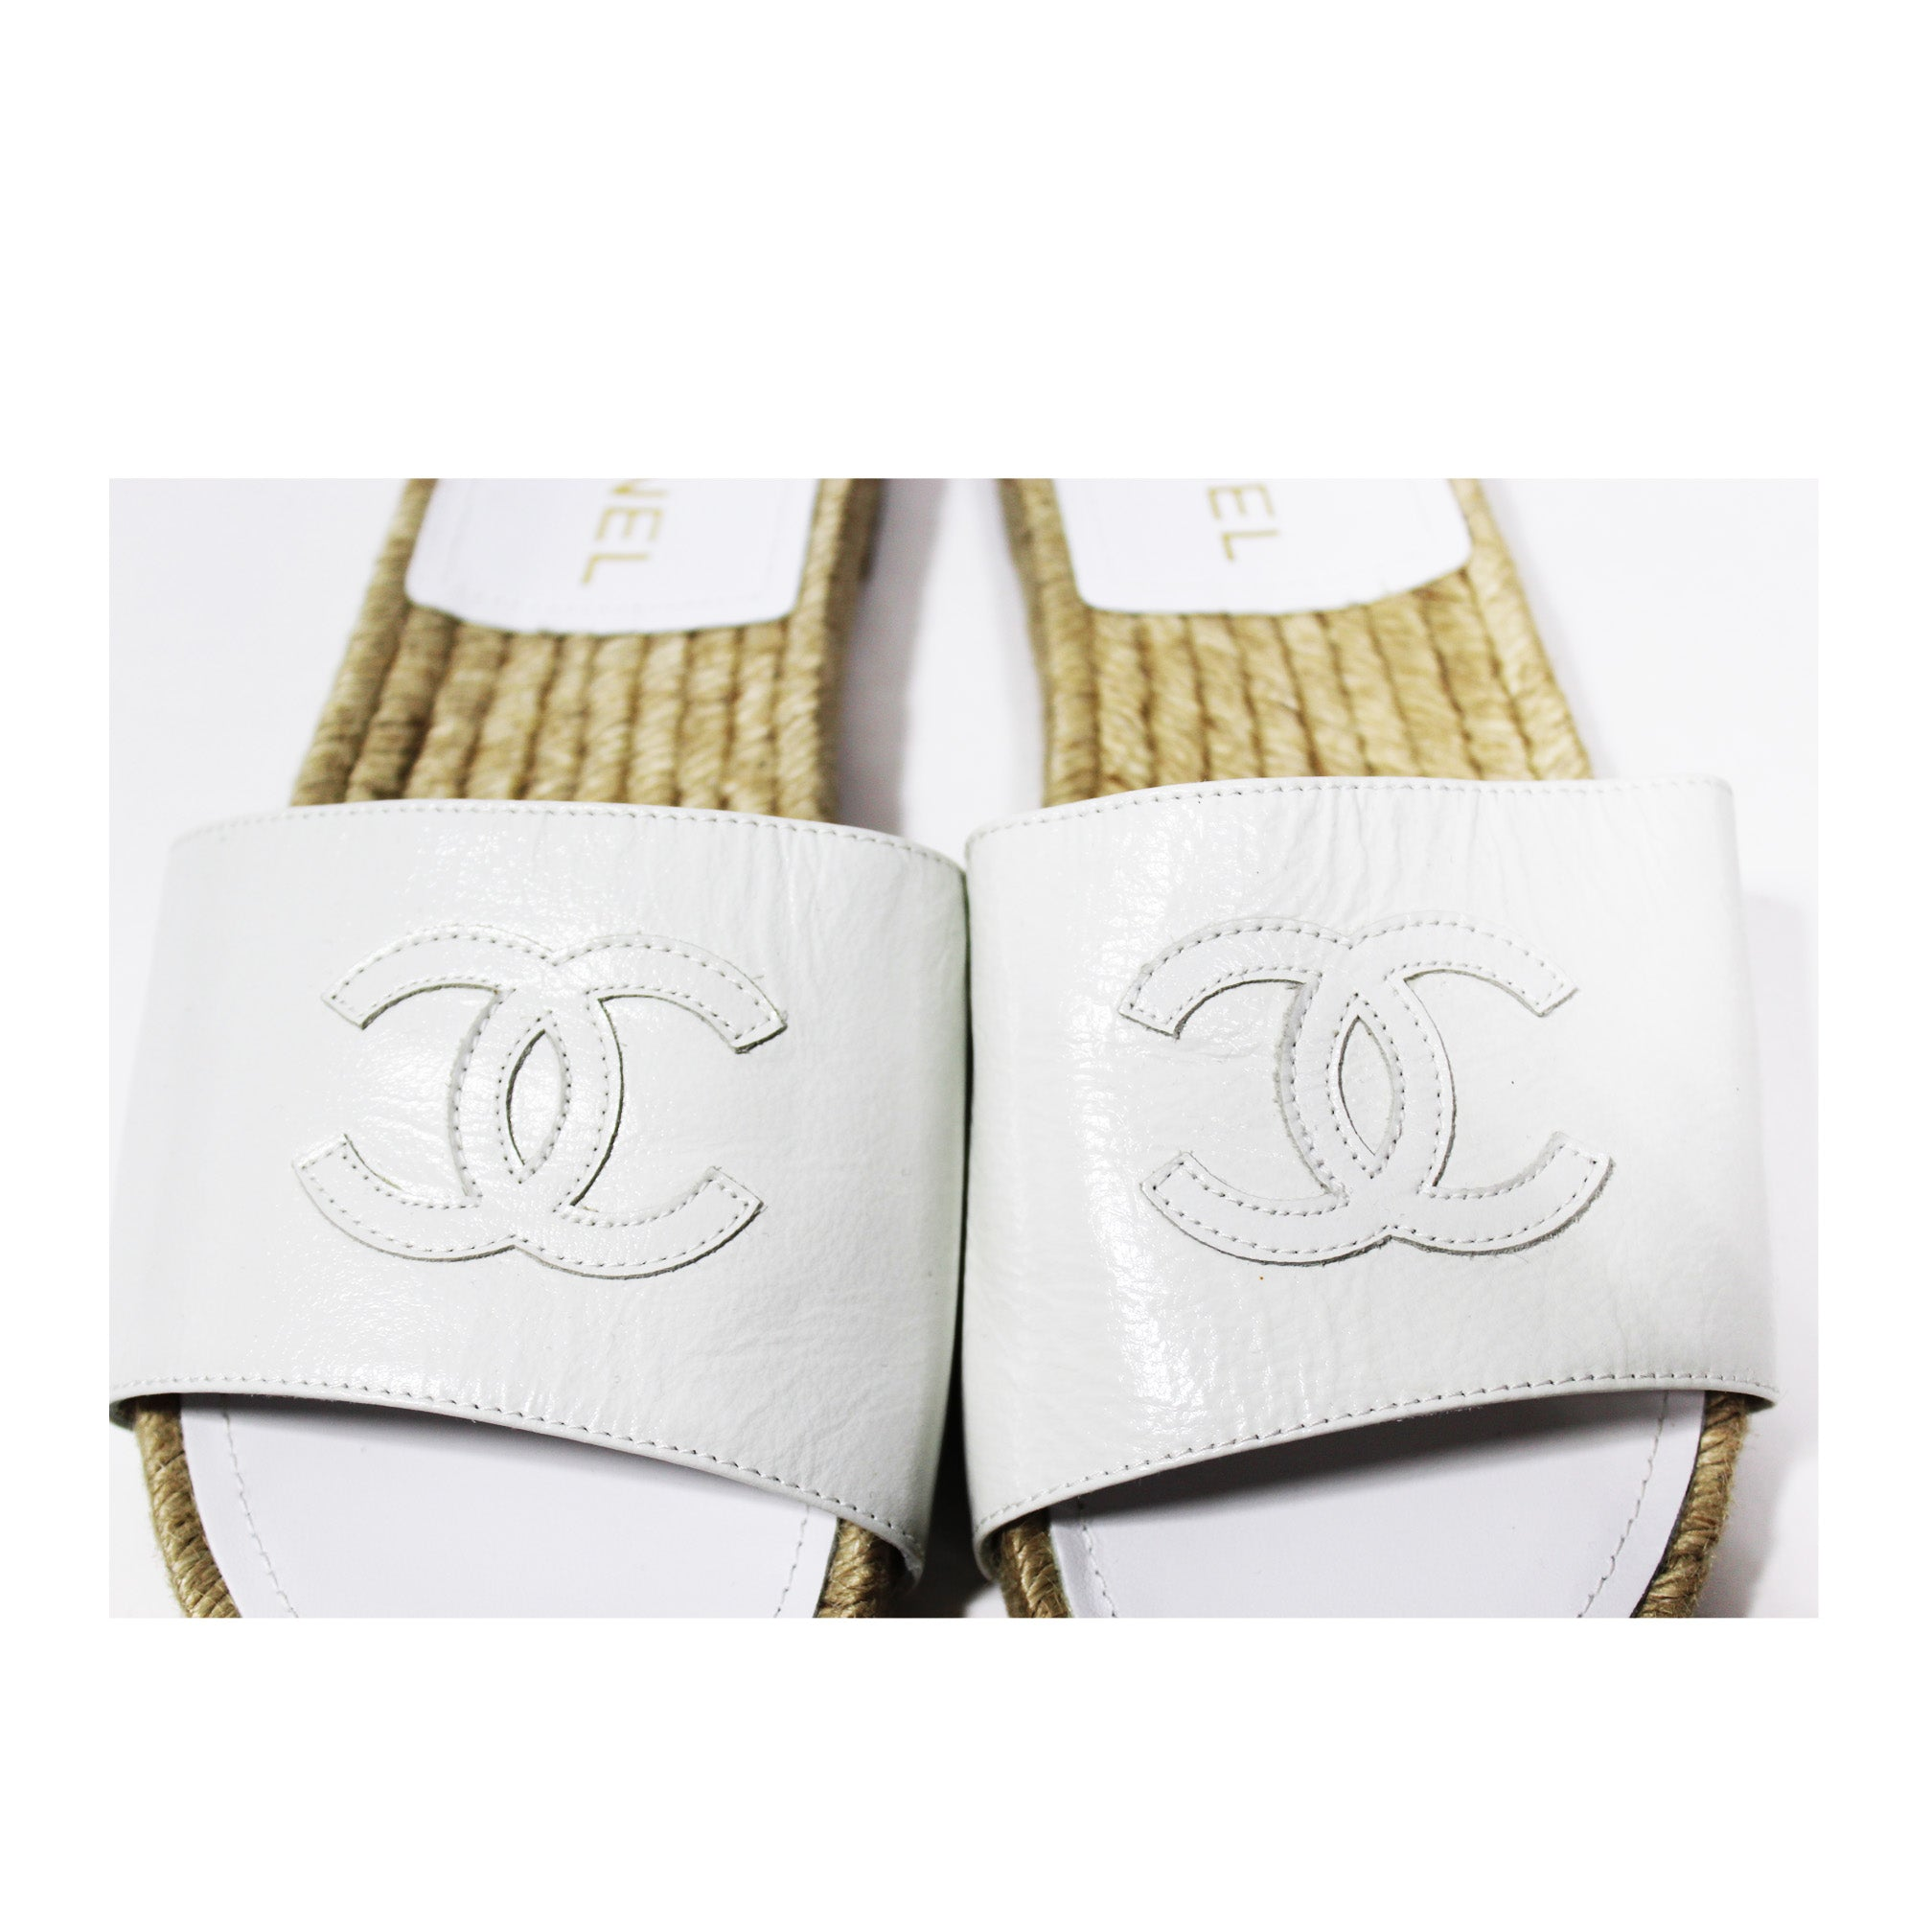 CHANEL 2018 White Creme Lambskin Leather Espadrille Mule Sandals 37